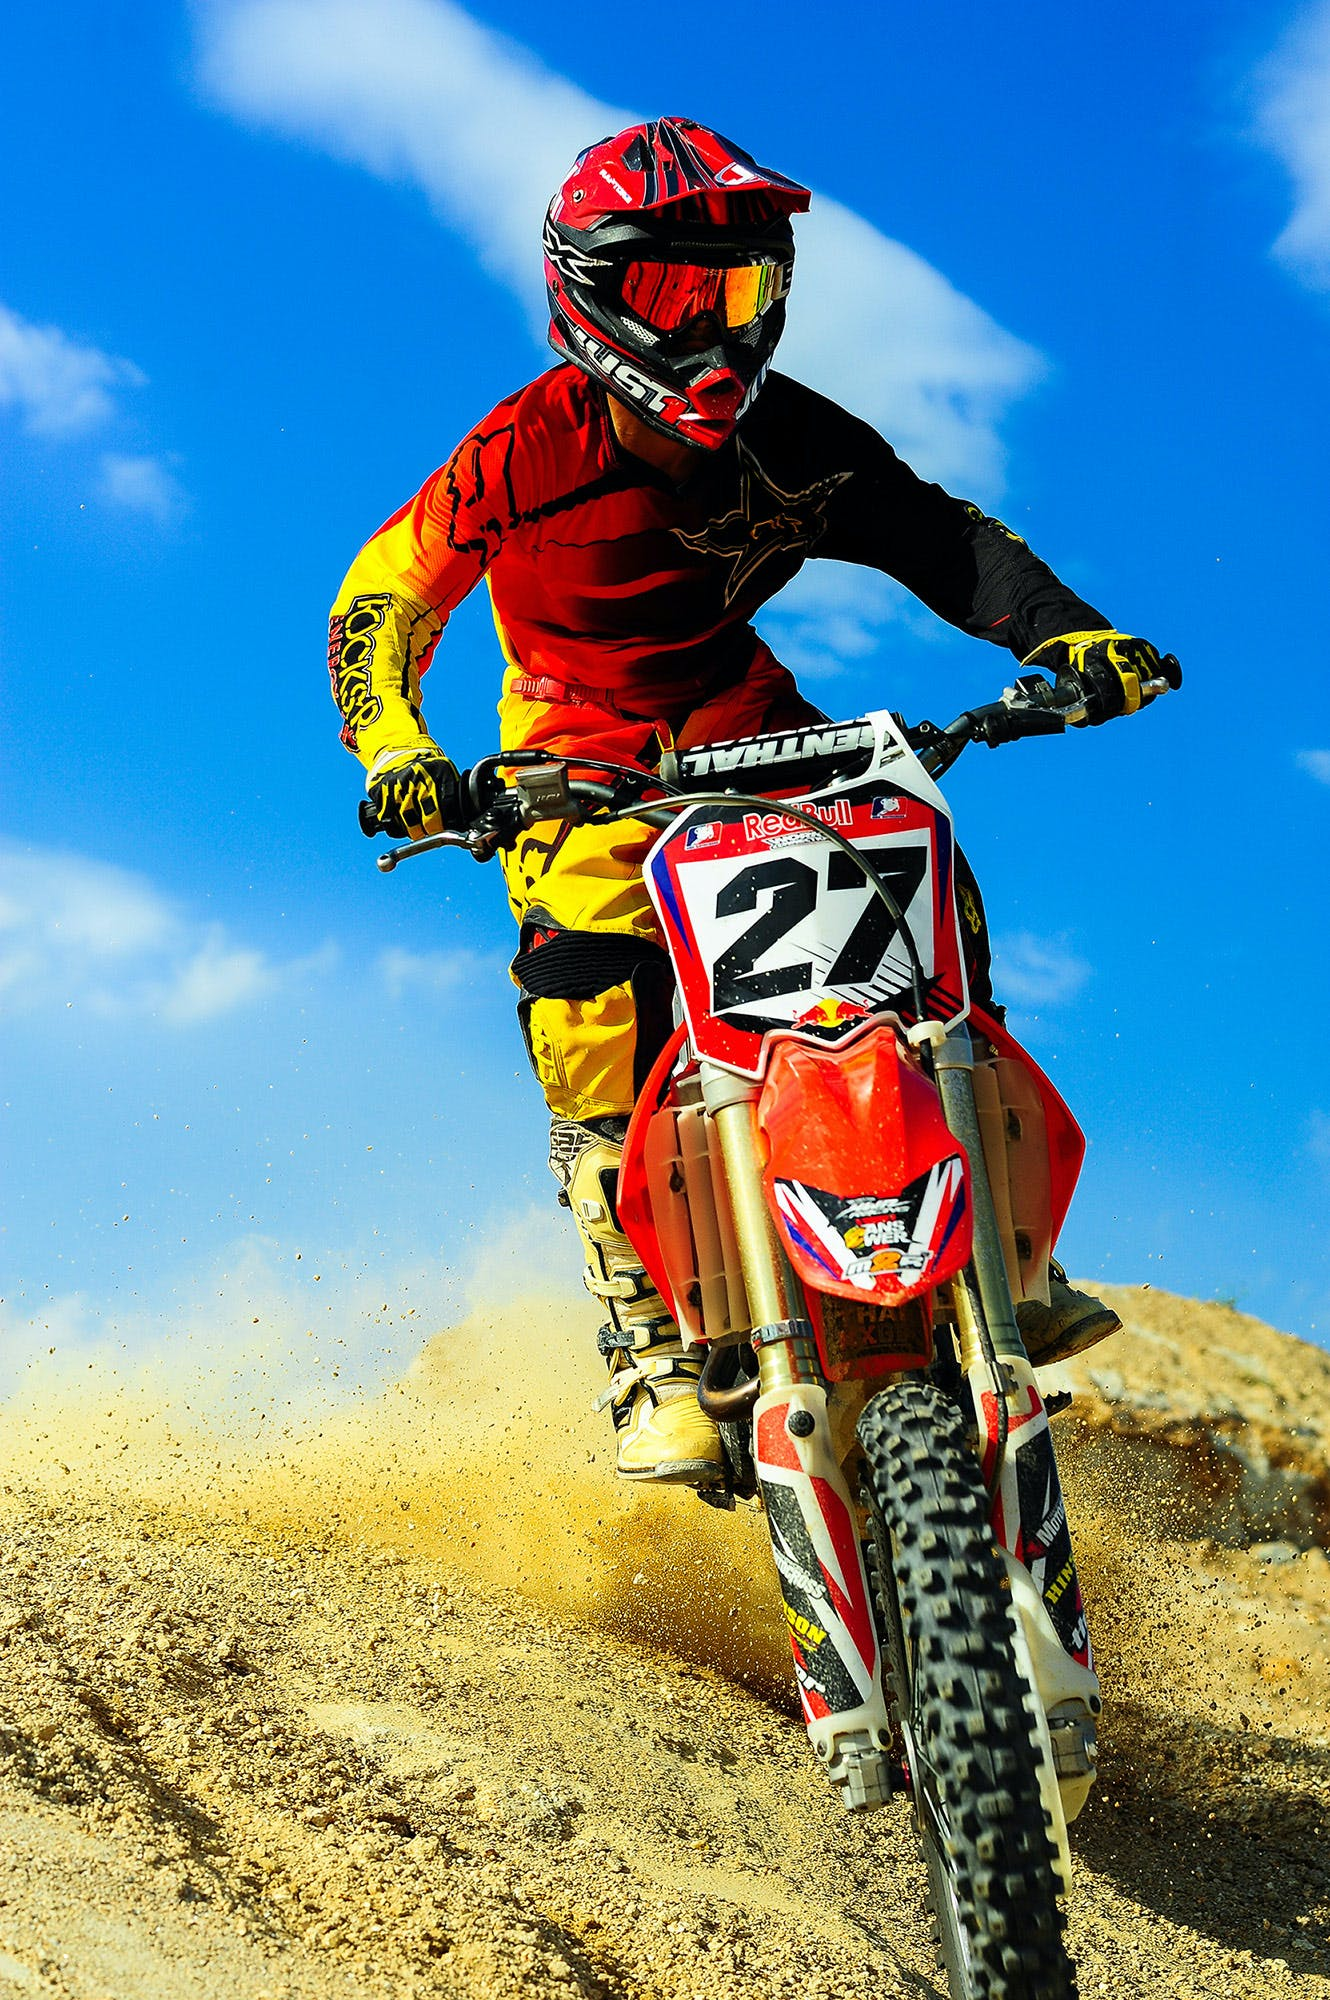 Photo of Person Riding Motocross Dirt Bike